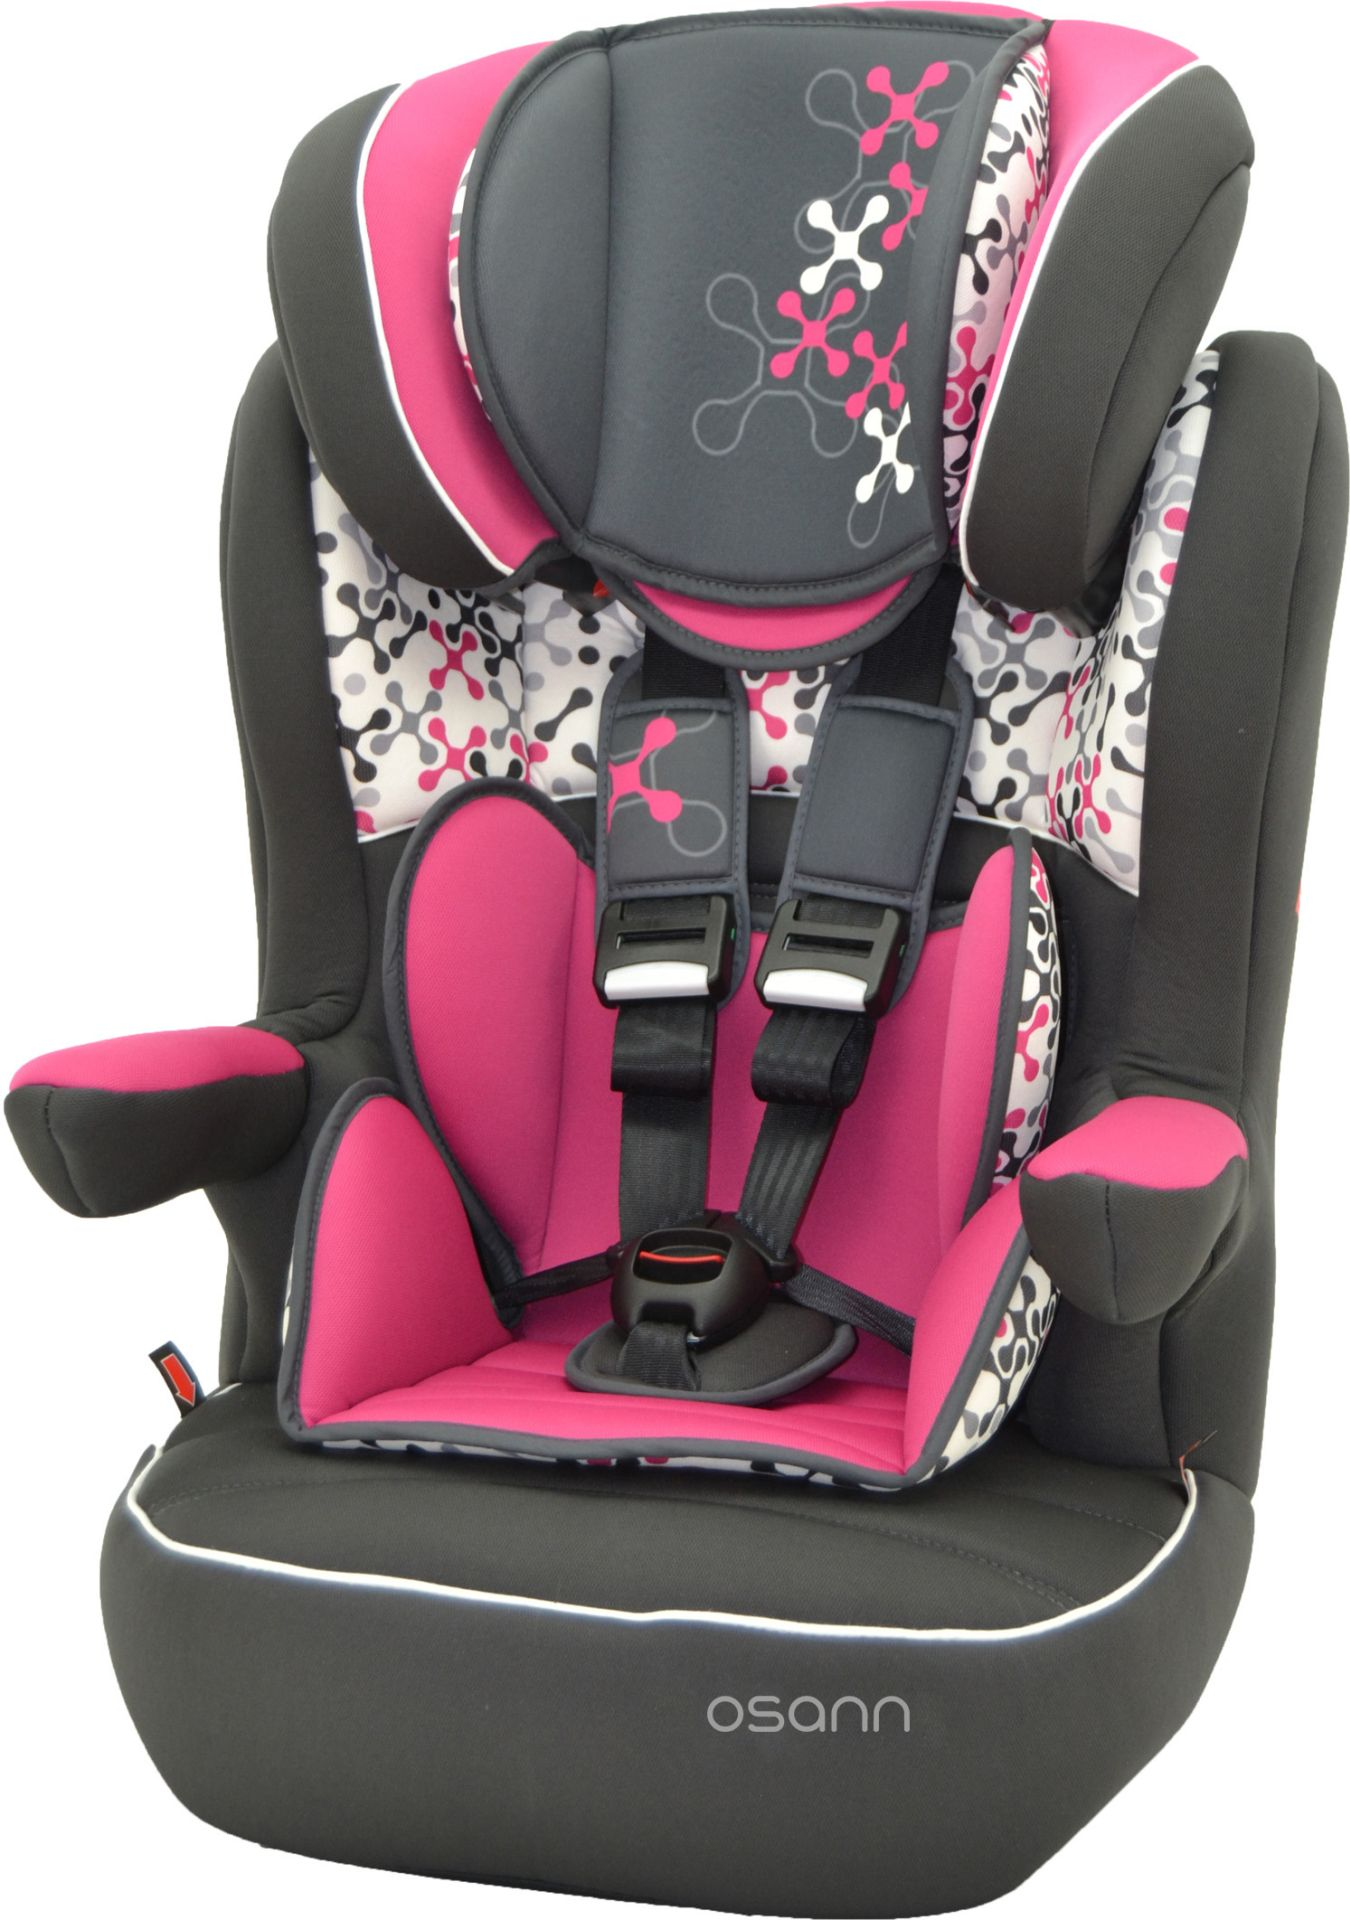 osann child car seat i max sp buy at kidsroom car seats. Black Bedroom Furniture Sets. Home Design Ideas